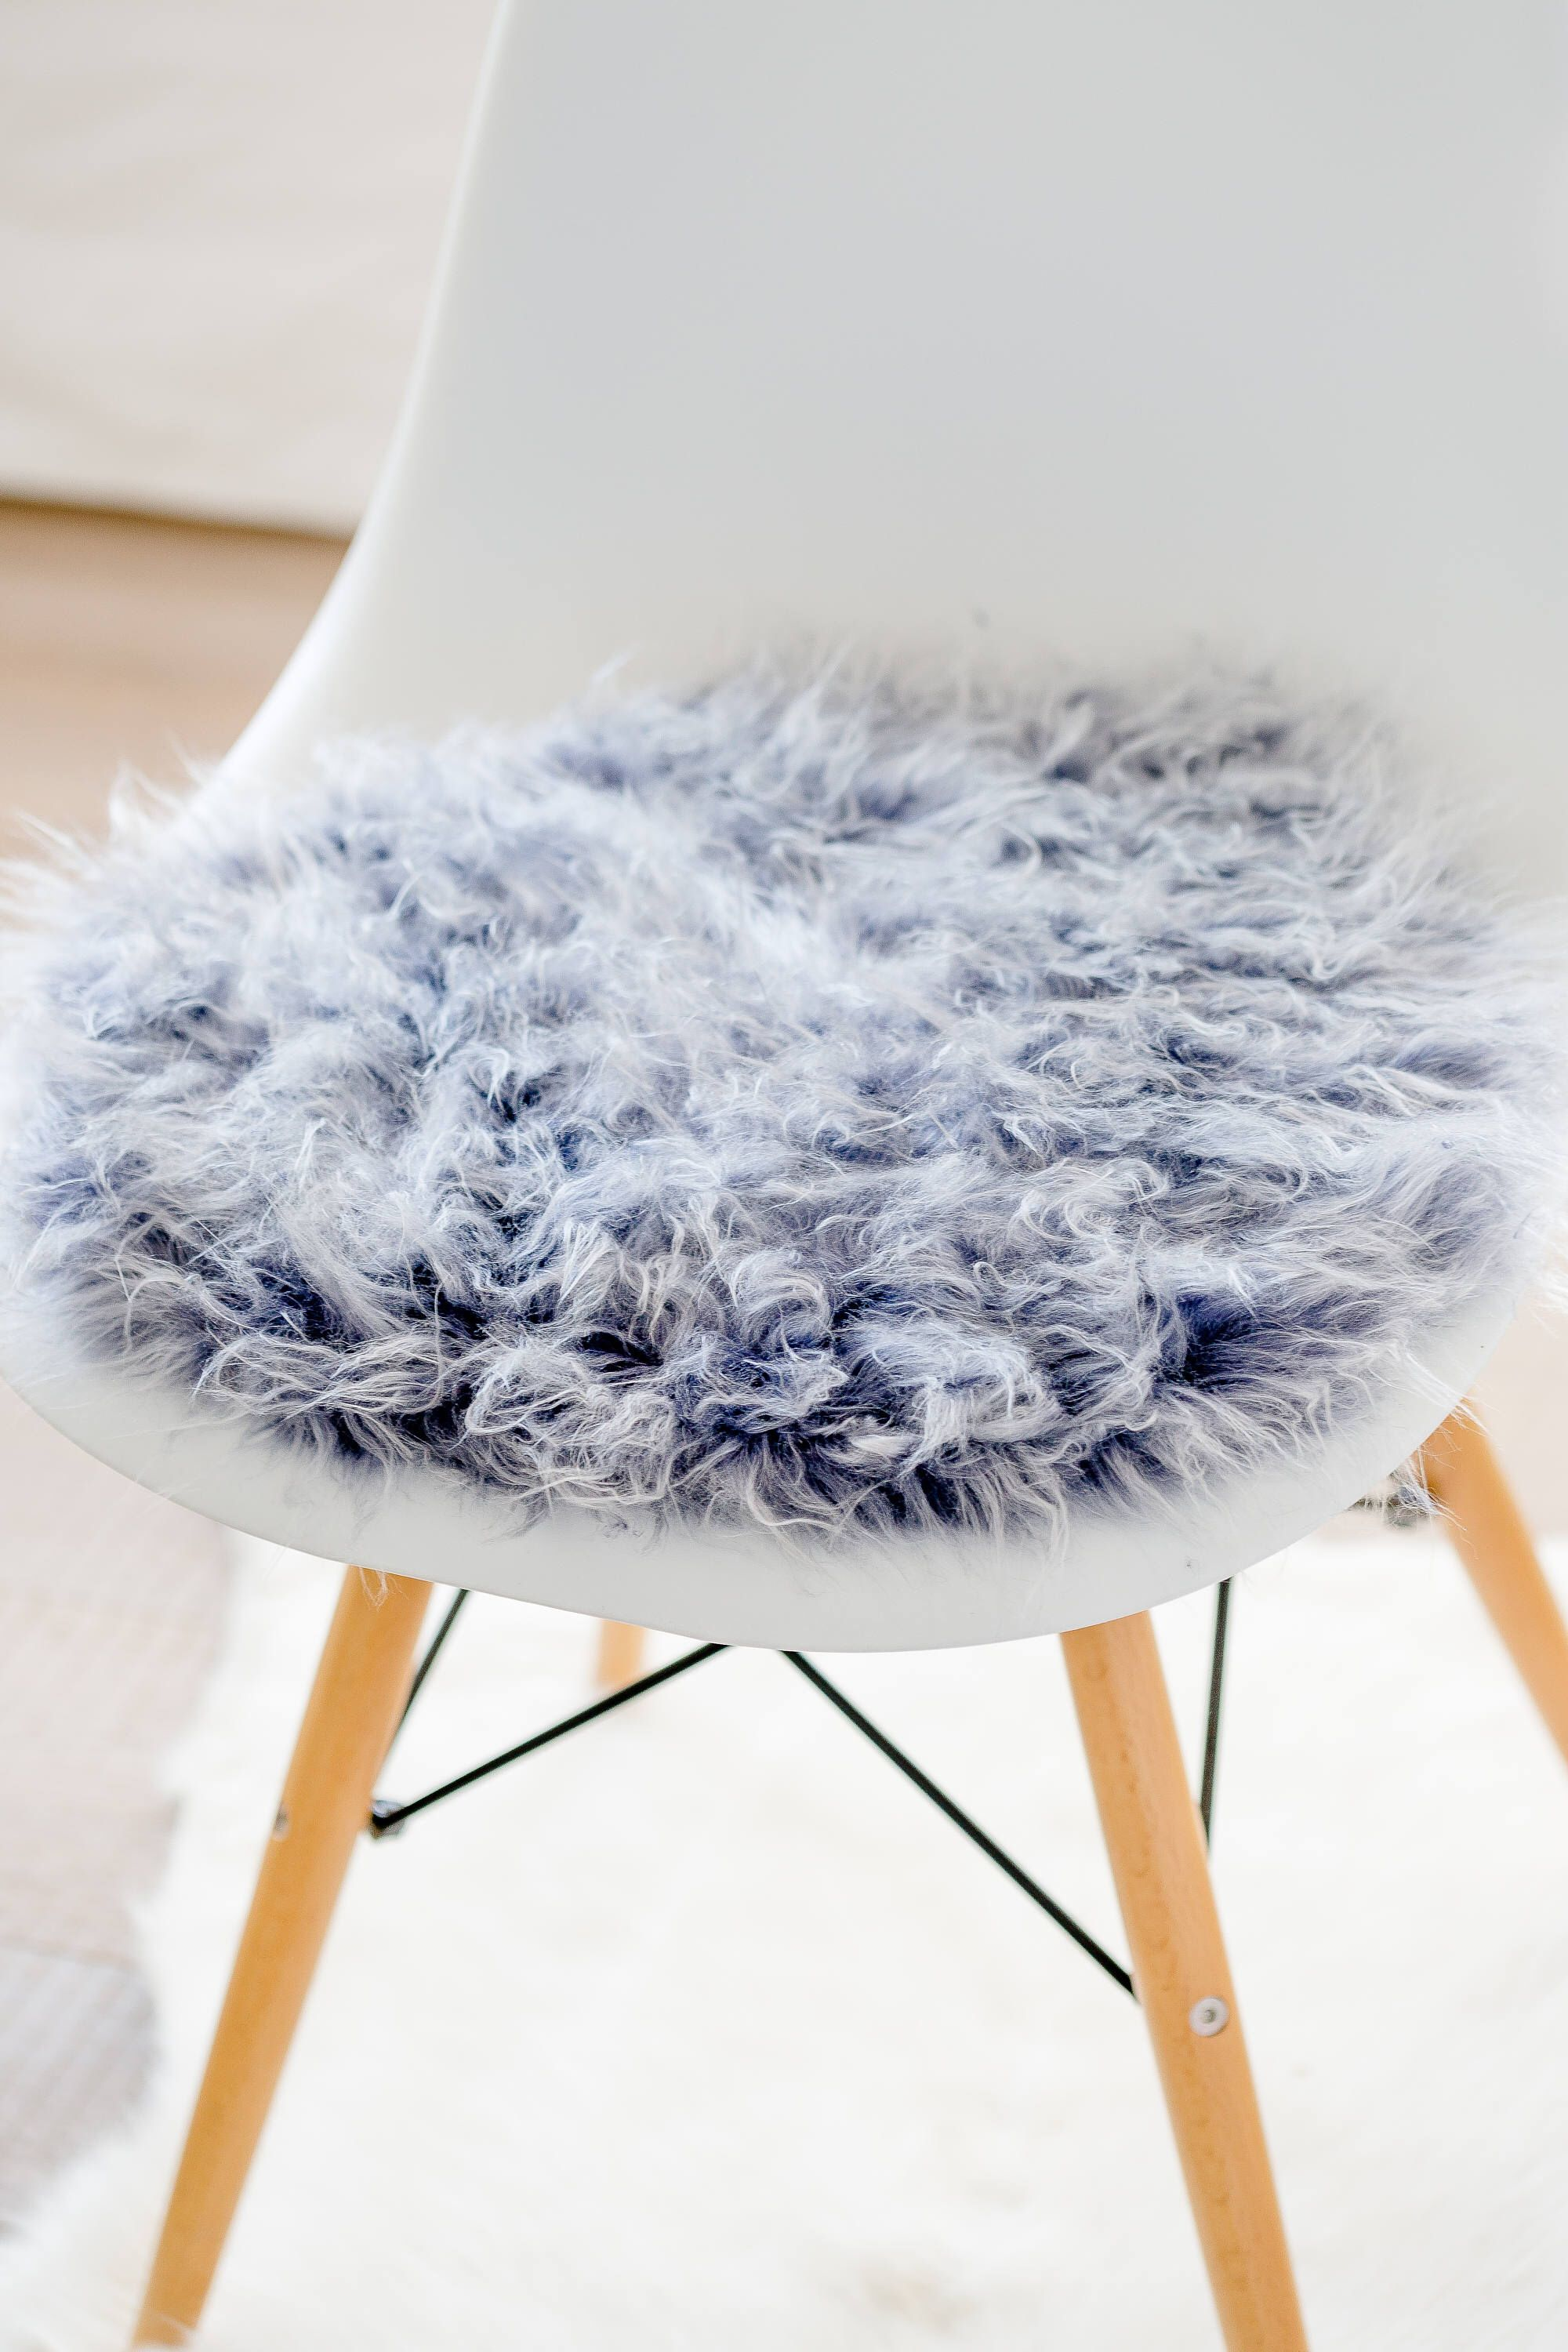 seat cushion for eameschair silver grey synthetic fur limited - Tolles Dekoration Eames Chair Sitzkissen